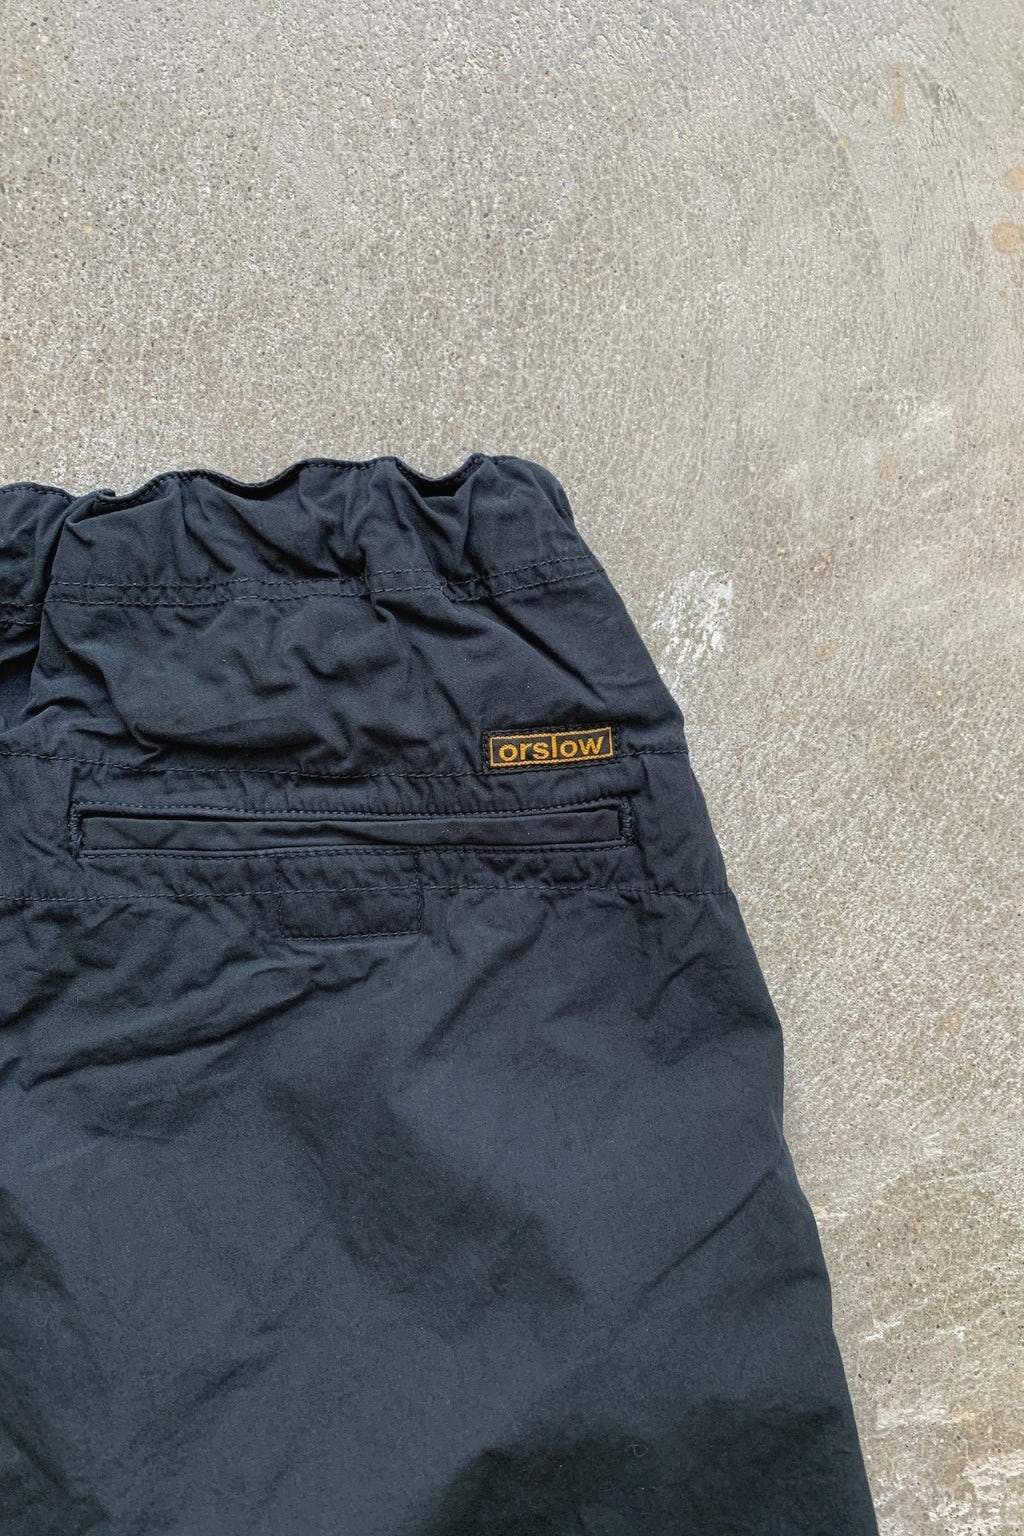 Orslow New Yorker Shorts Charcoal